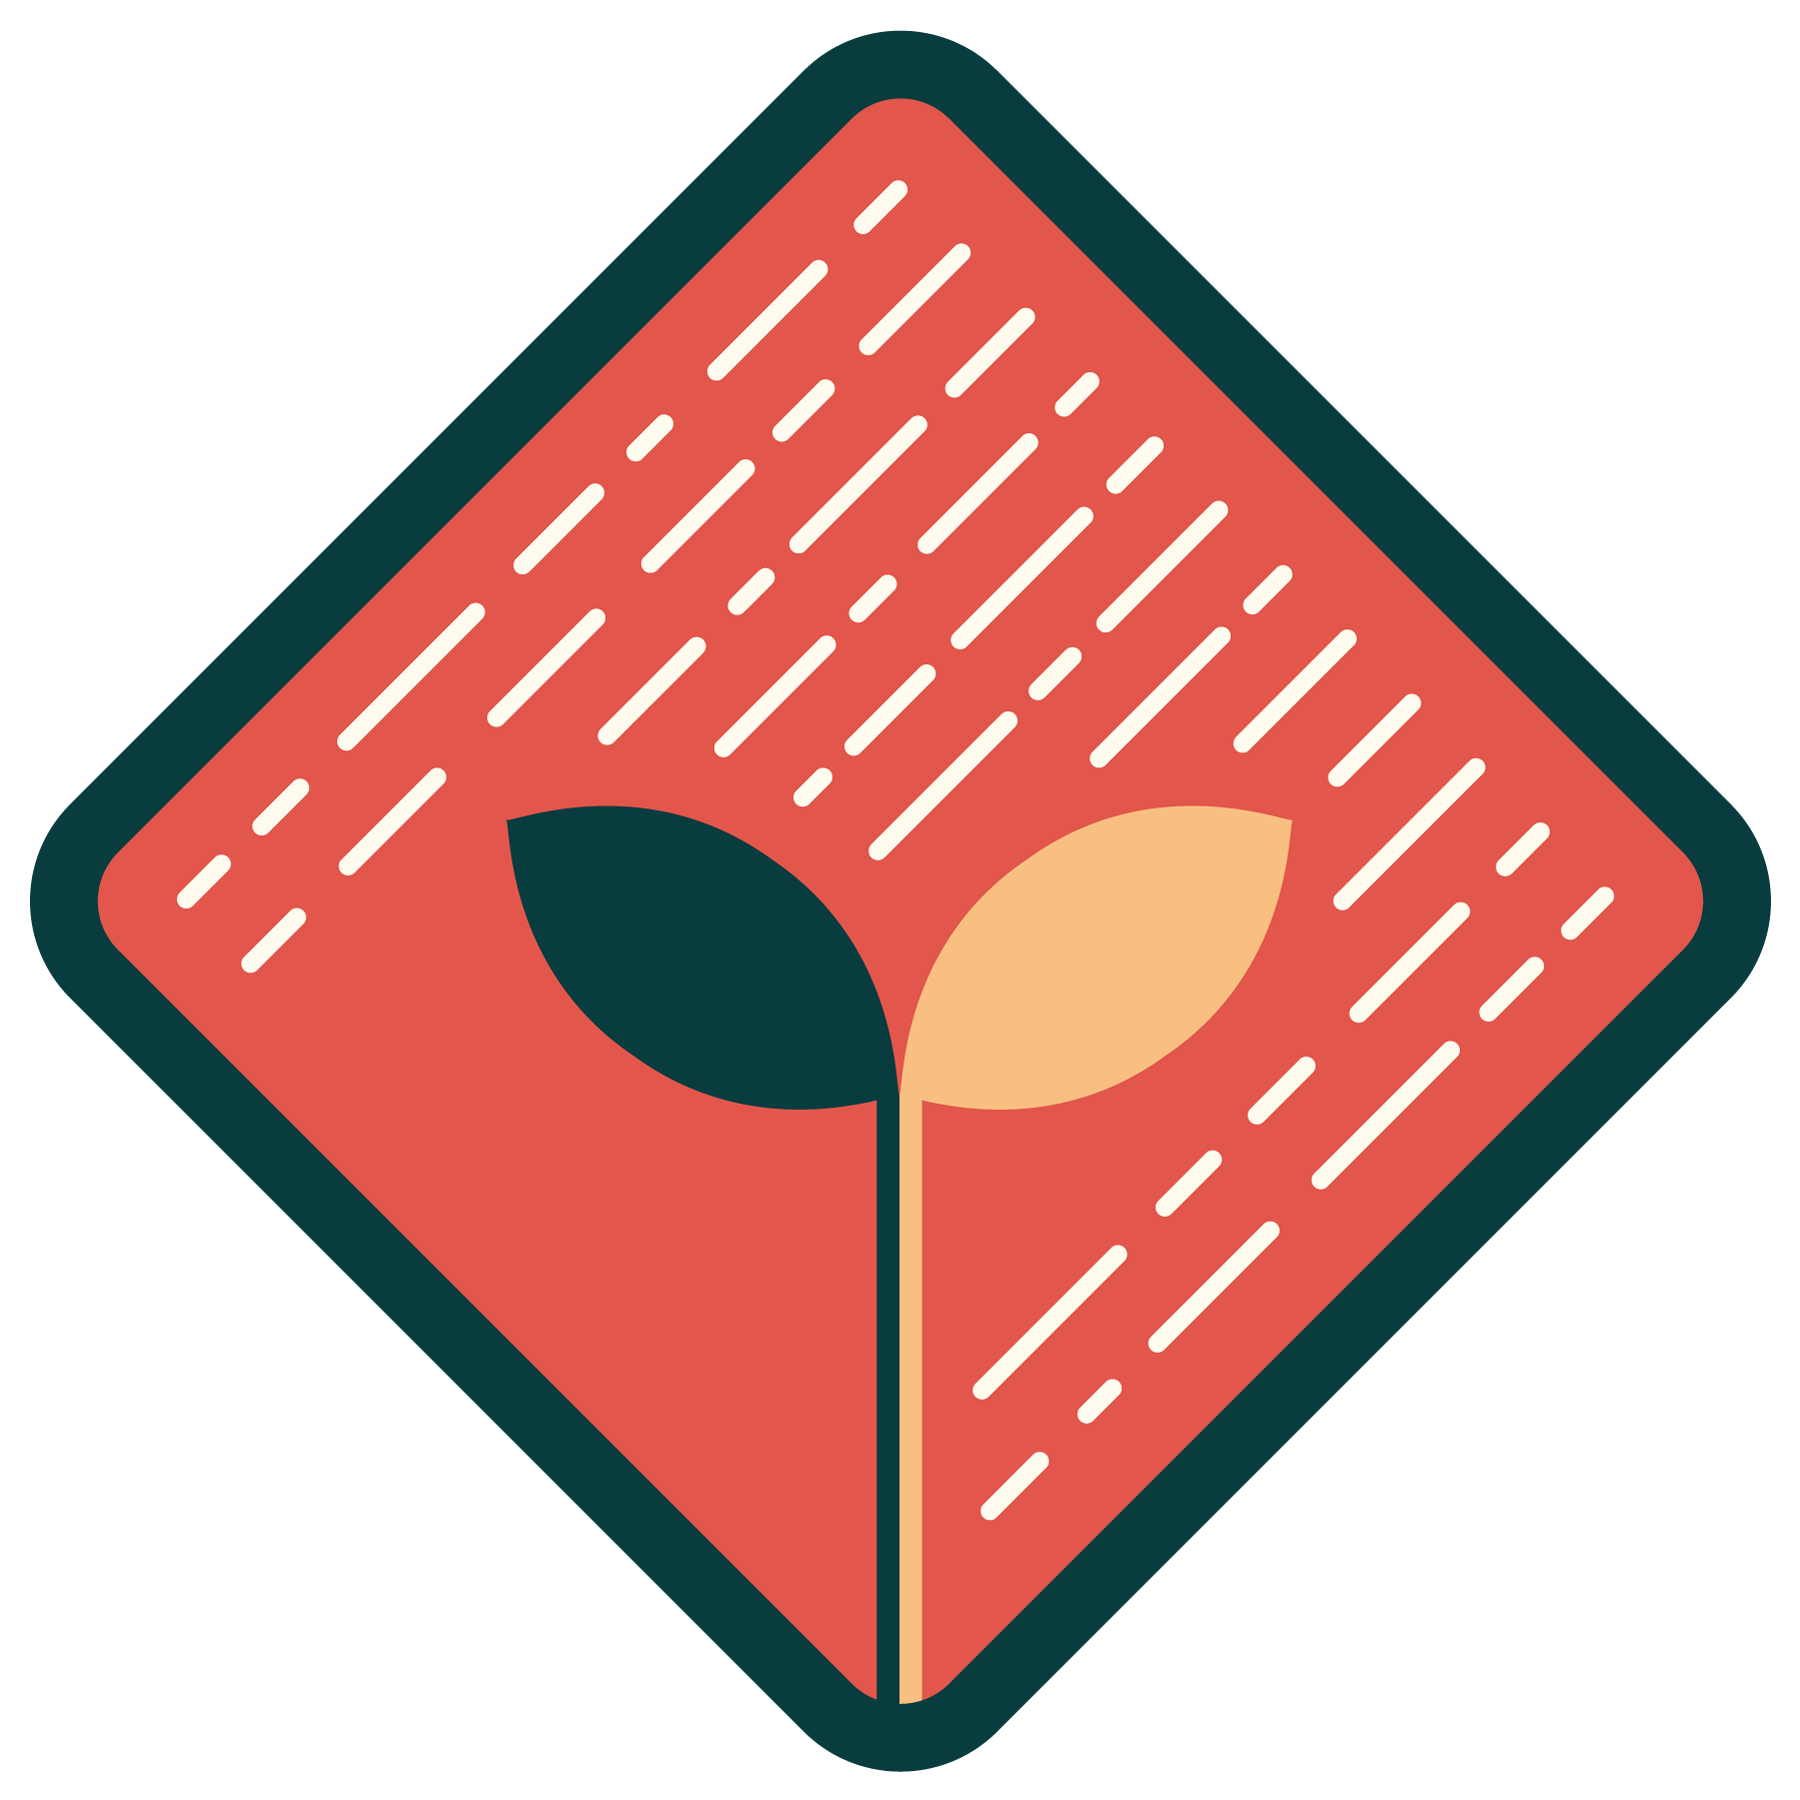 LFF009-Plant-Vector-Badge.png